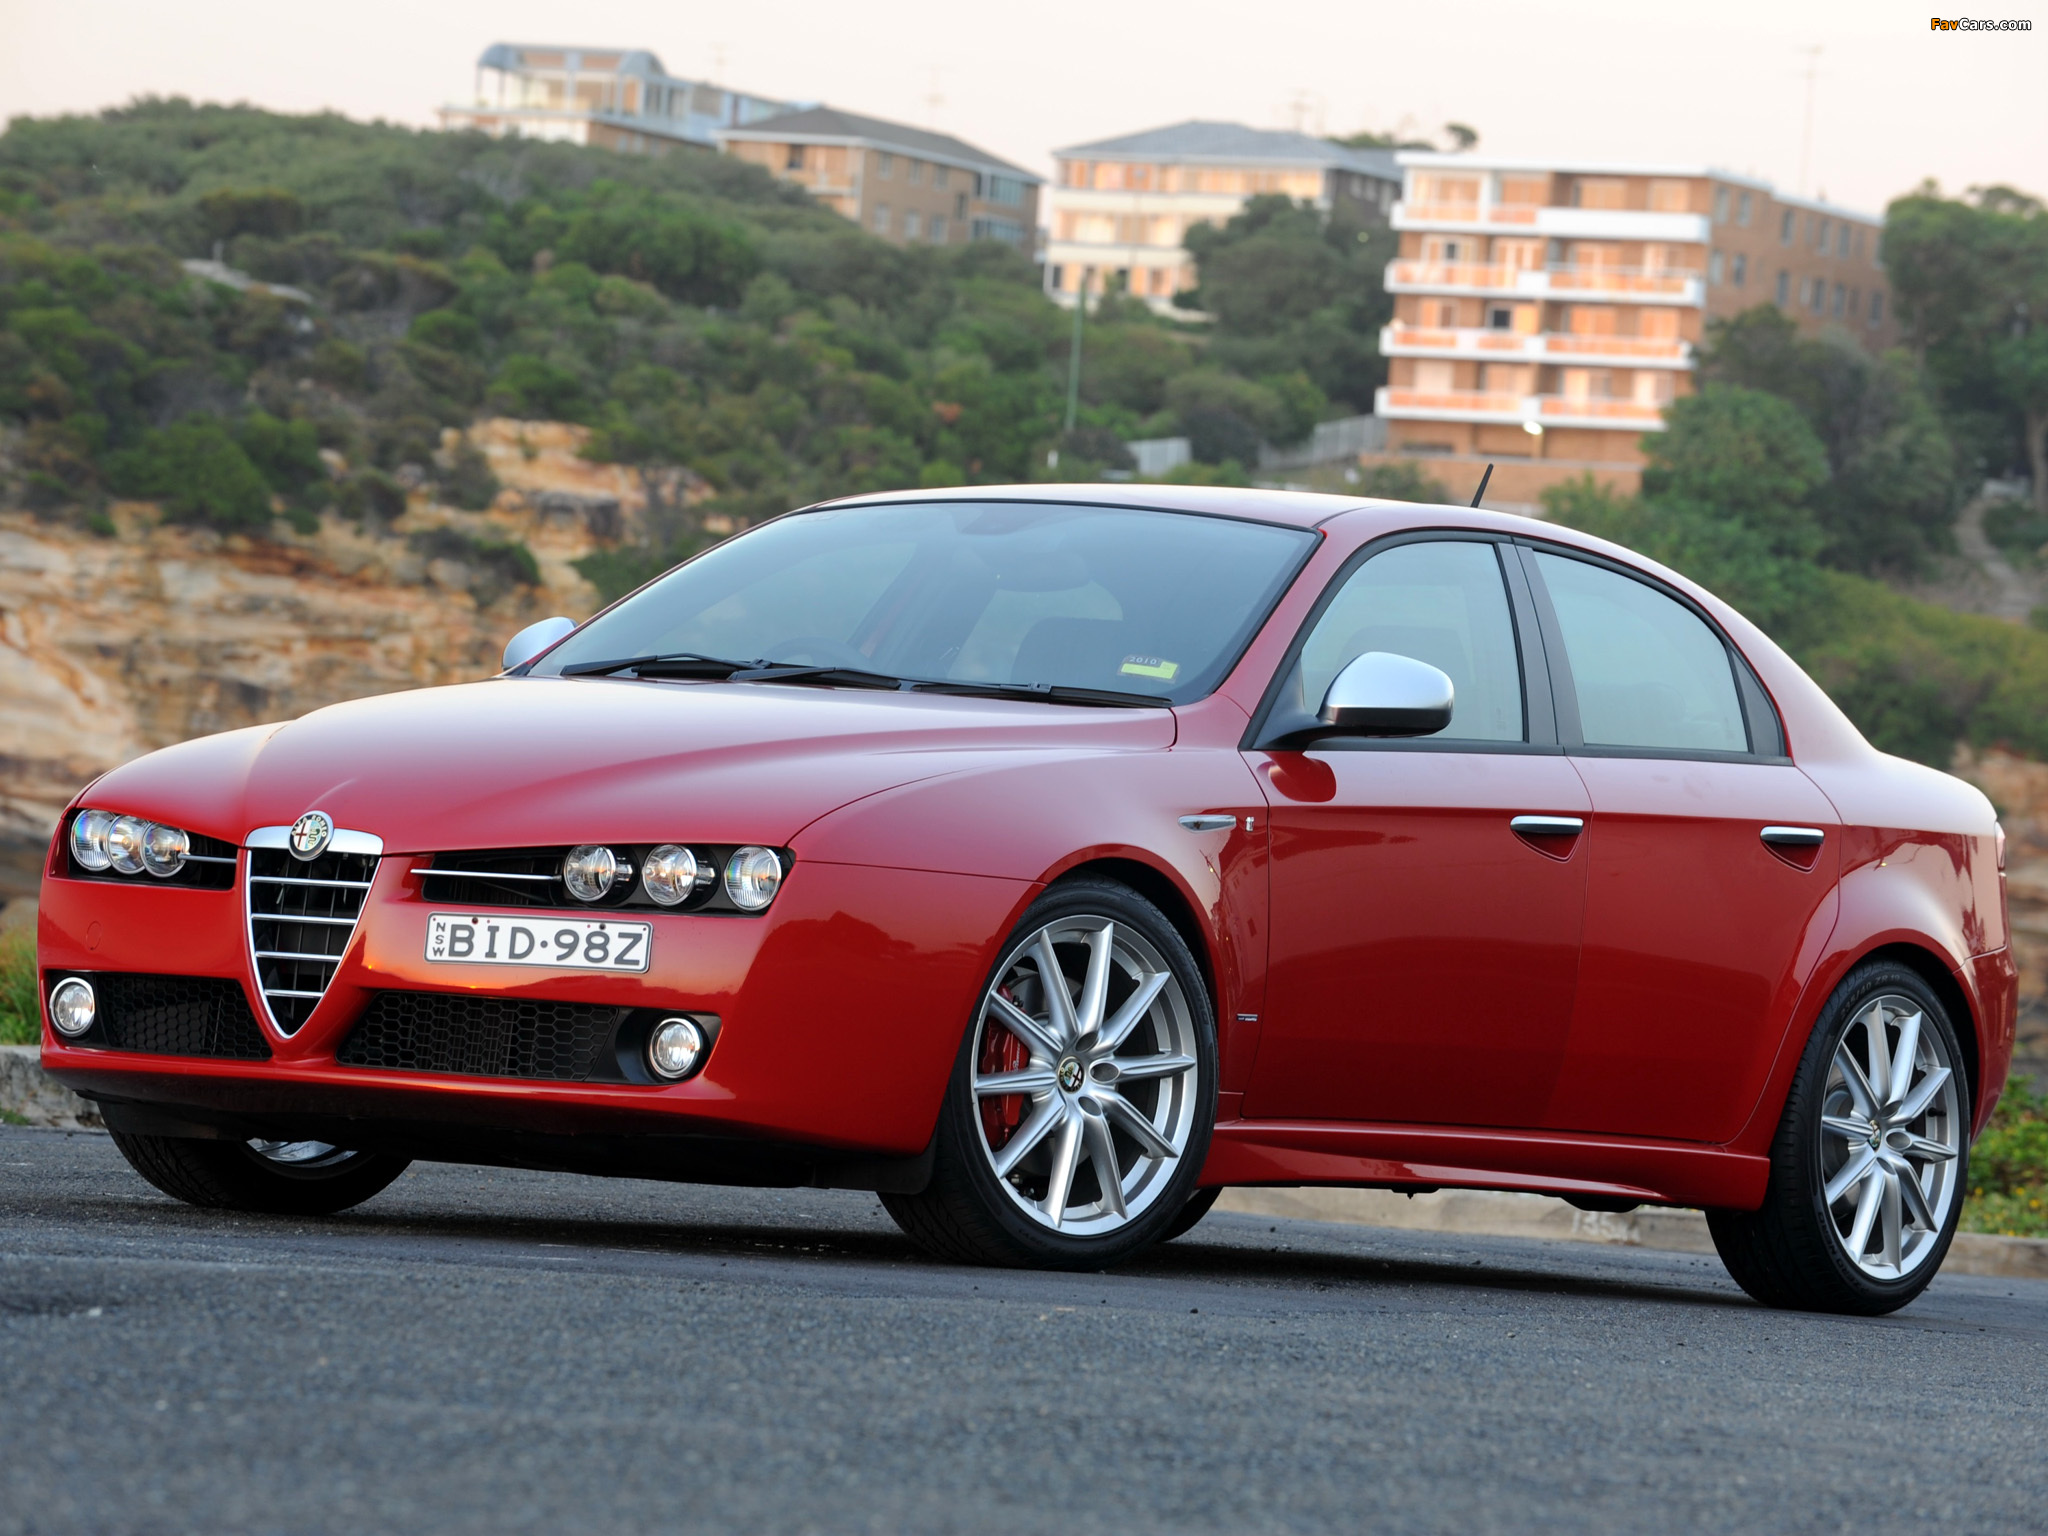 alfa romeo 159 ti au spec 939a 2008 2011 wallpapers 2048x1536. Black Bedroom Furniture Sets. Home Design Ideas